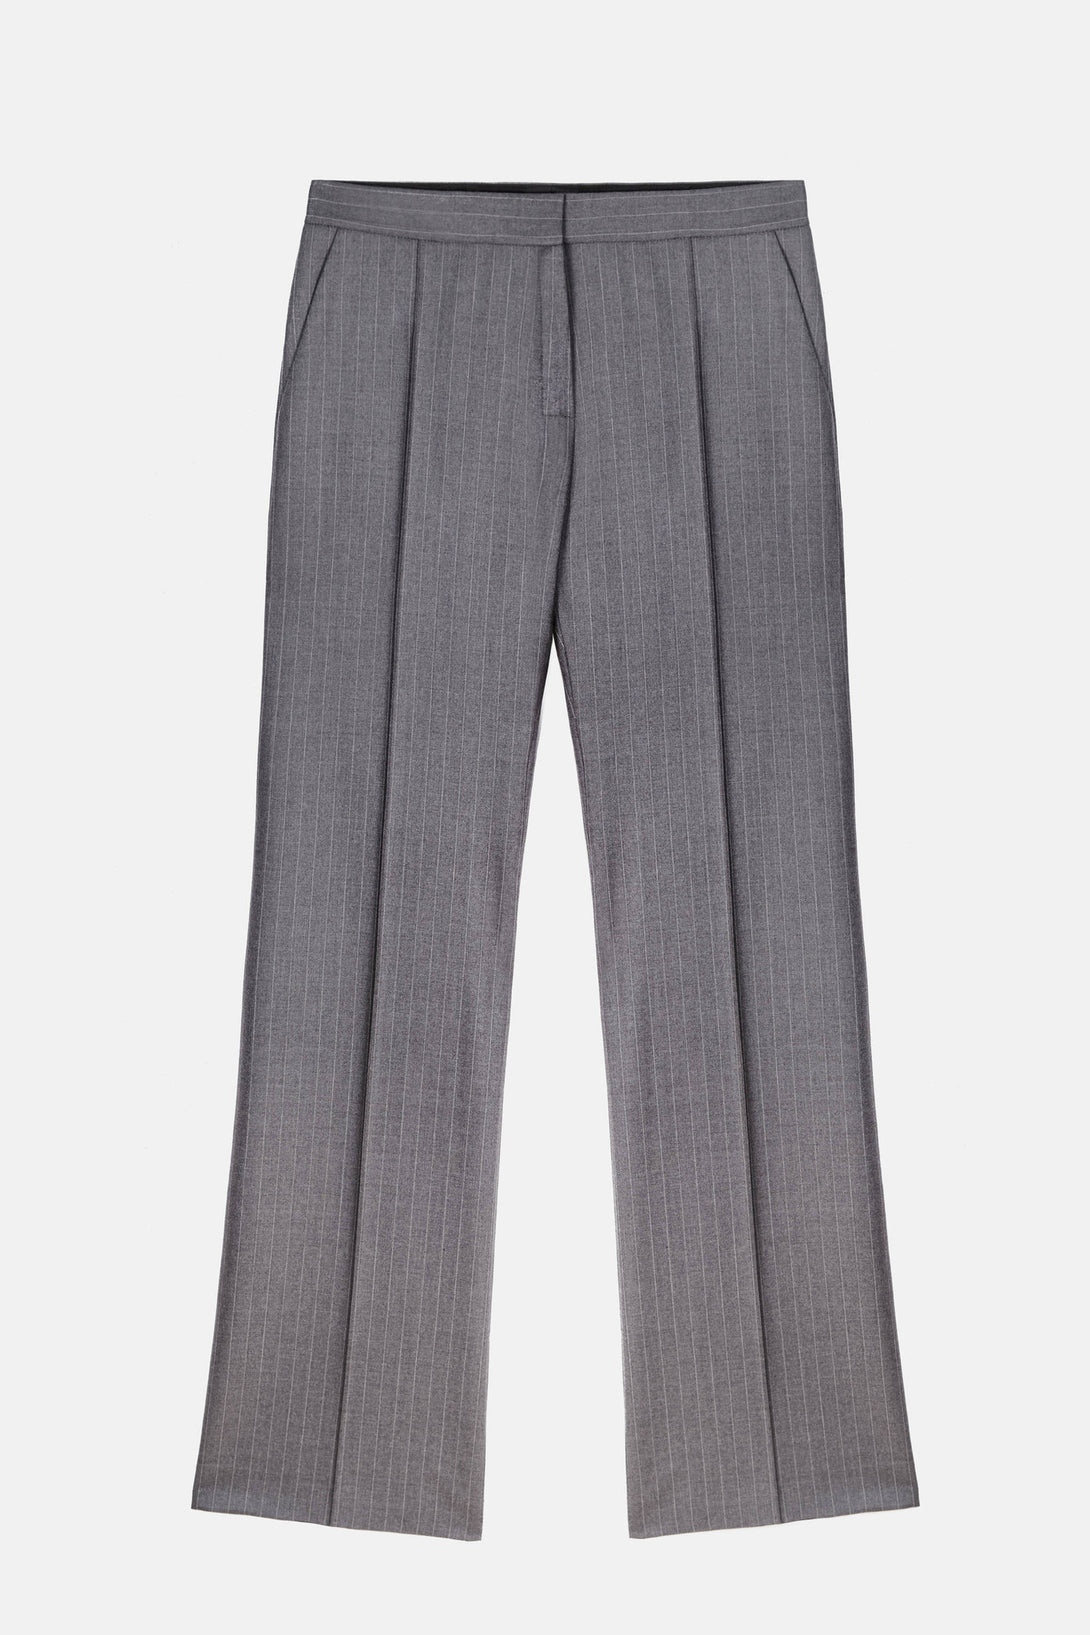 Machiavel Flared Pant - Grey Pinstripe